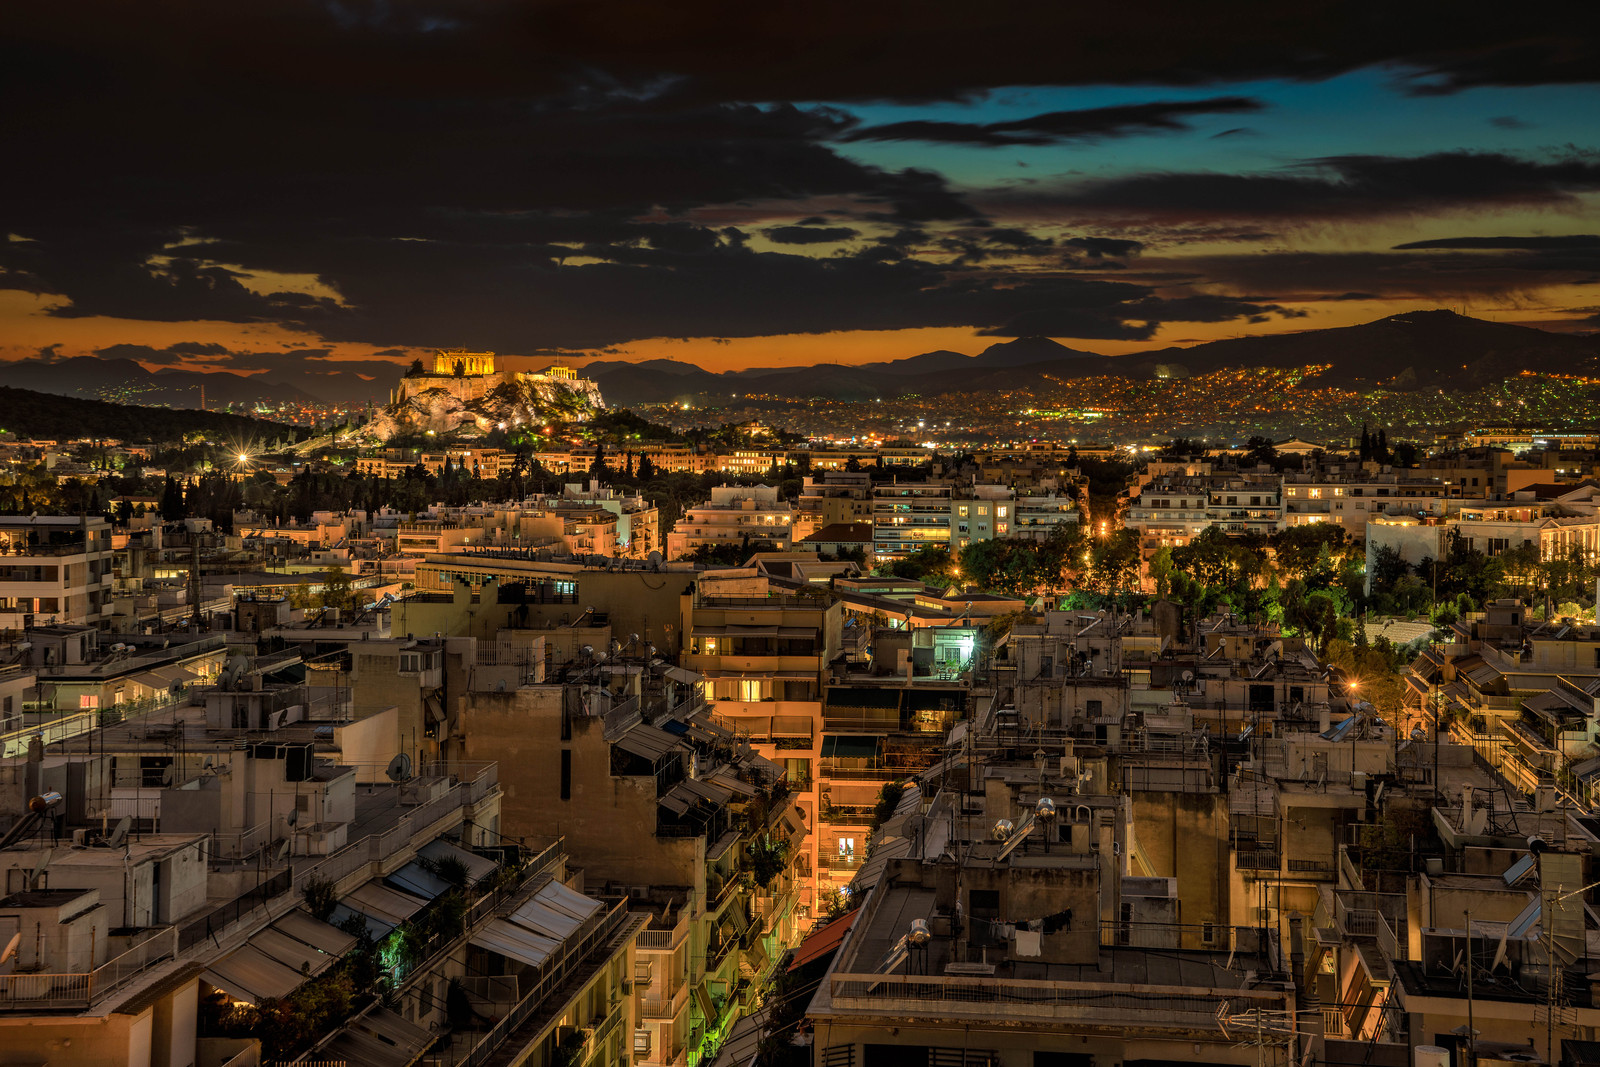 A view of Athens at night